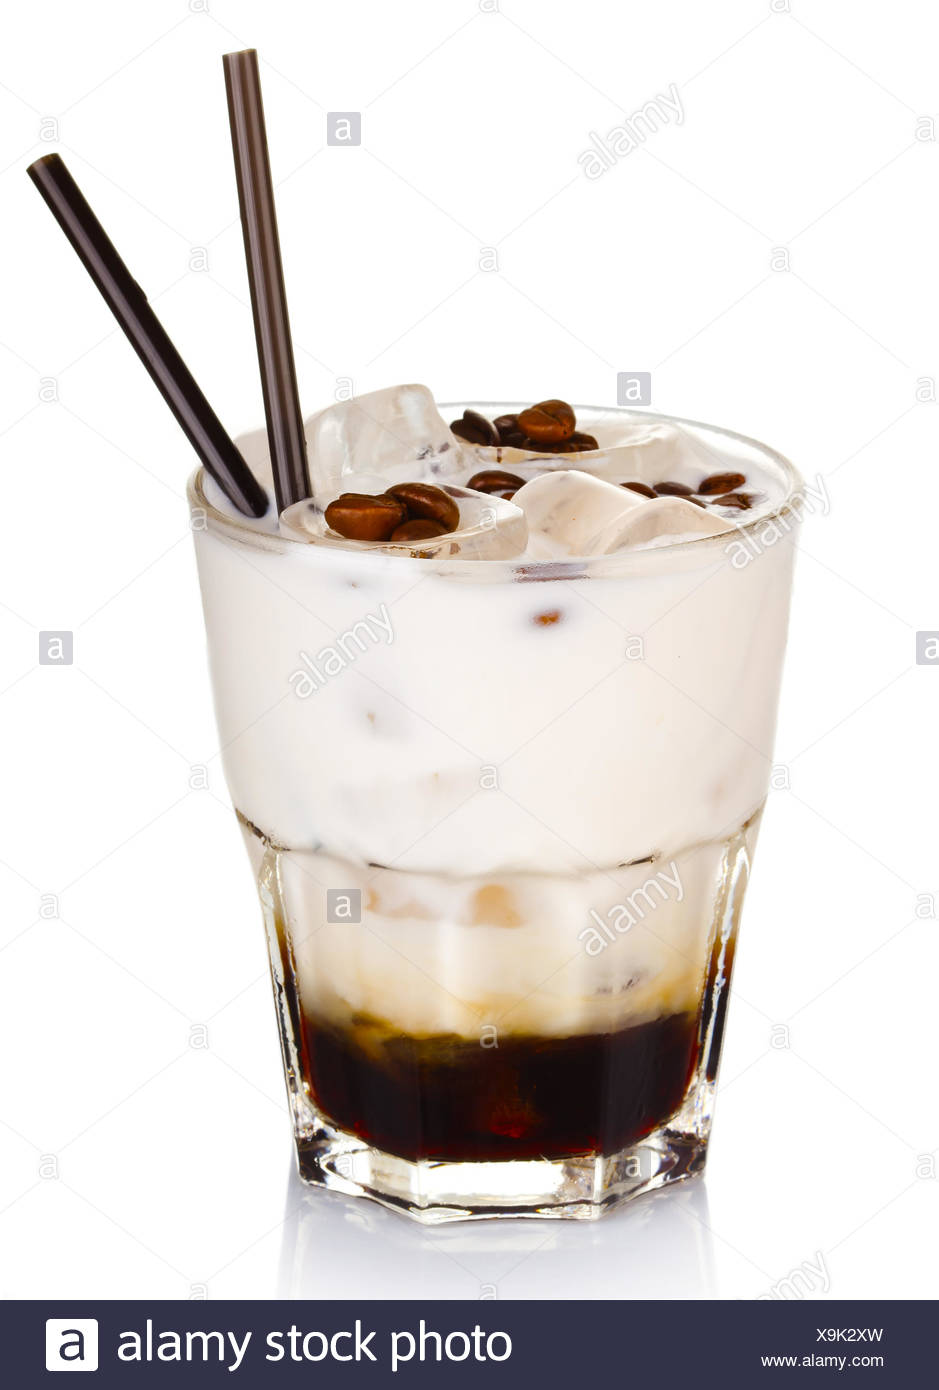 White Russian Cocktail: composition and recipe 72